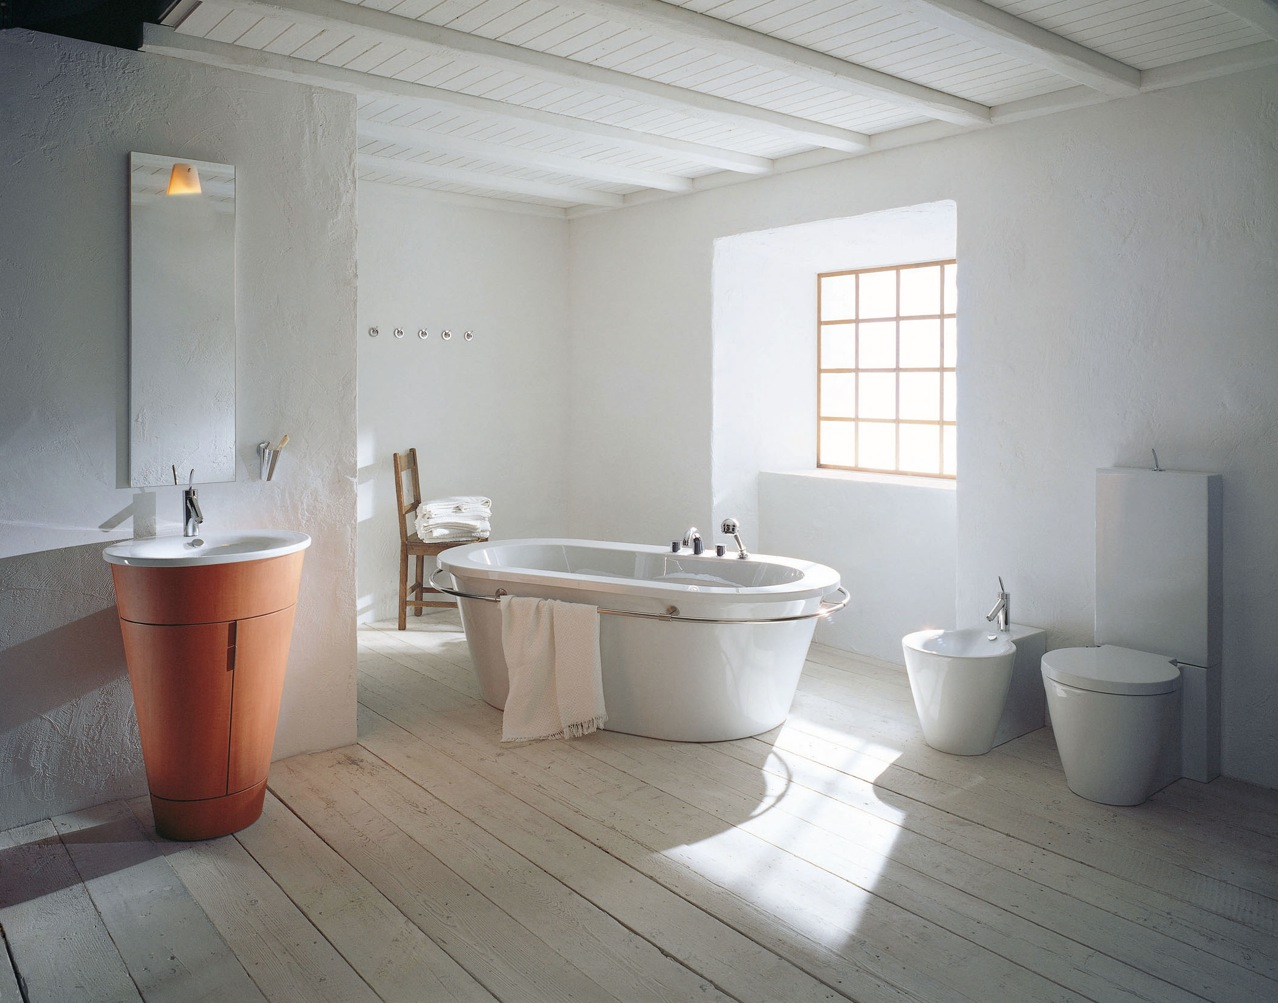 Philipe starck rustic modern bathroom decor interior Contemporary bathrooms